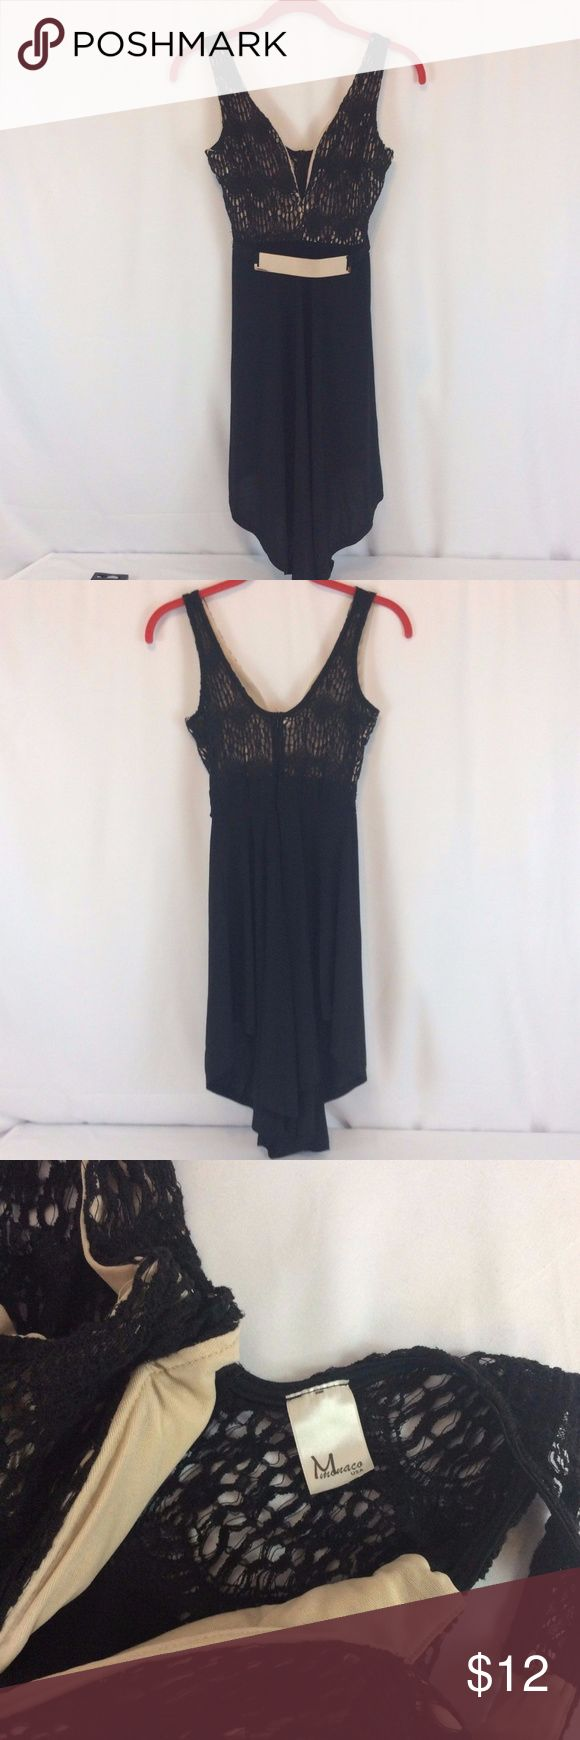 Monaco Tank Top Size Small Sleeveless Black Monaco Womens Tank Top Size Small Sleeveless Black Lace With Gold Metal Belt.  Belt has minor scratches.  Very cute shirt.  Perfect for Holiday parties. monaco Tops Tank Tops